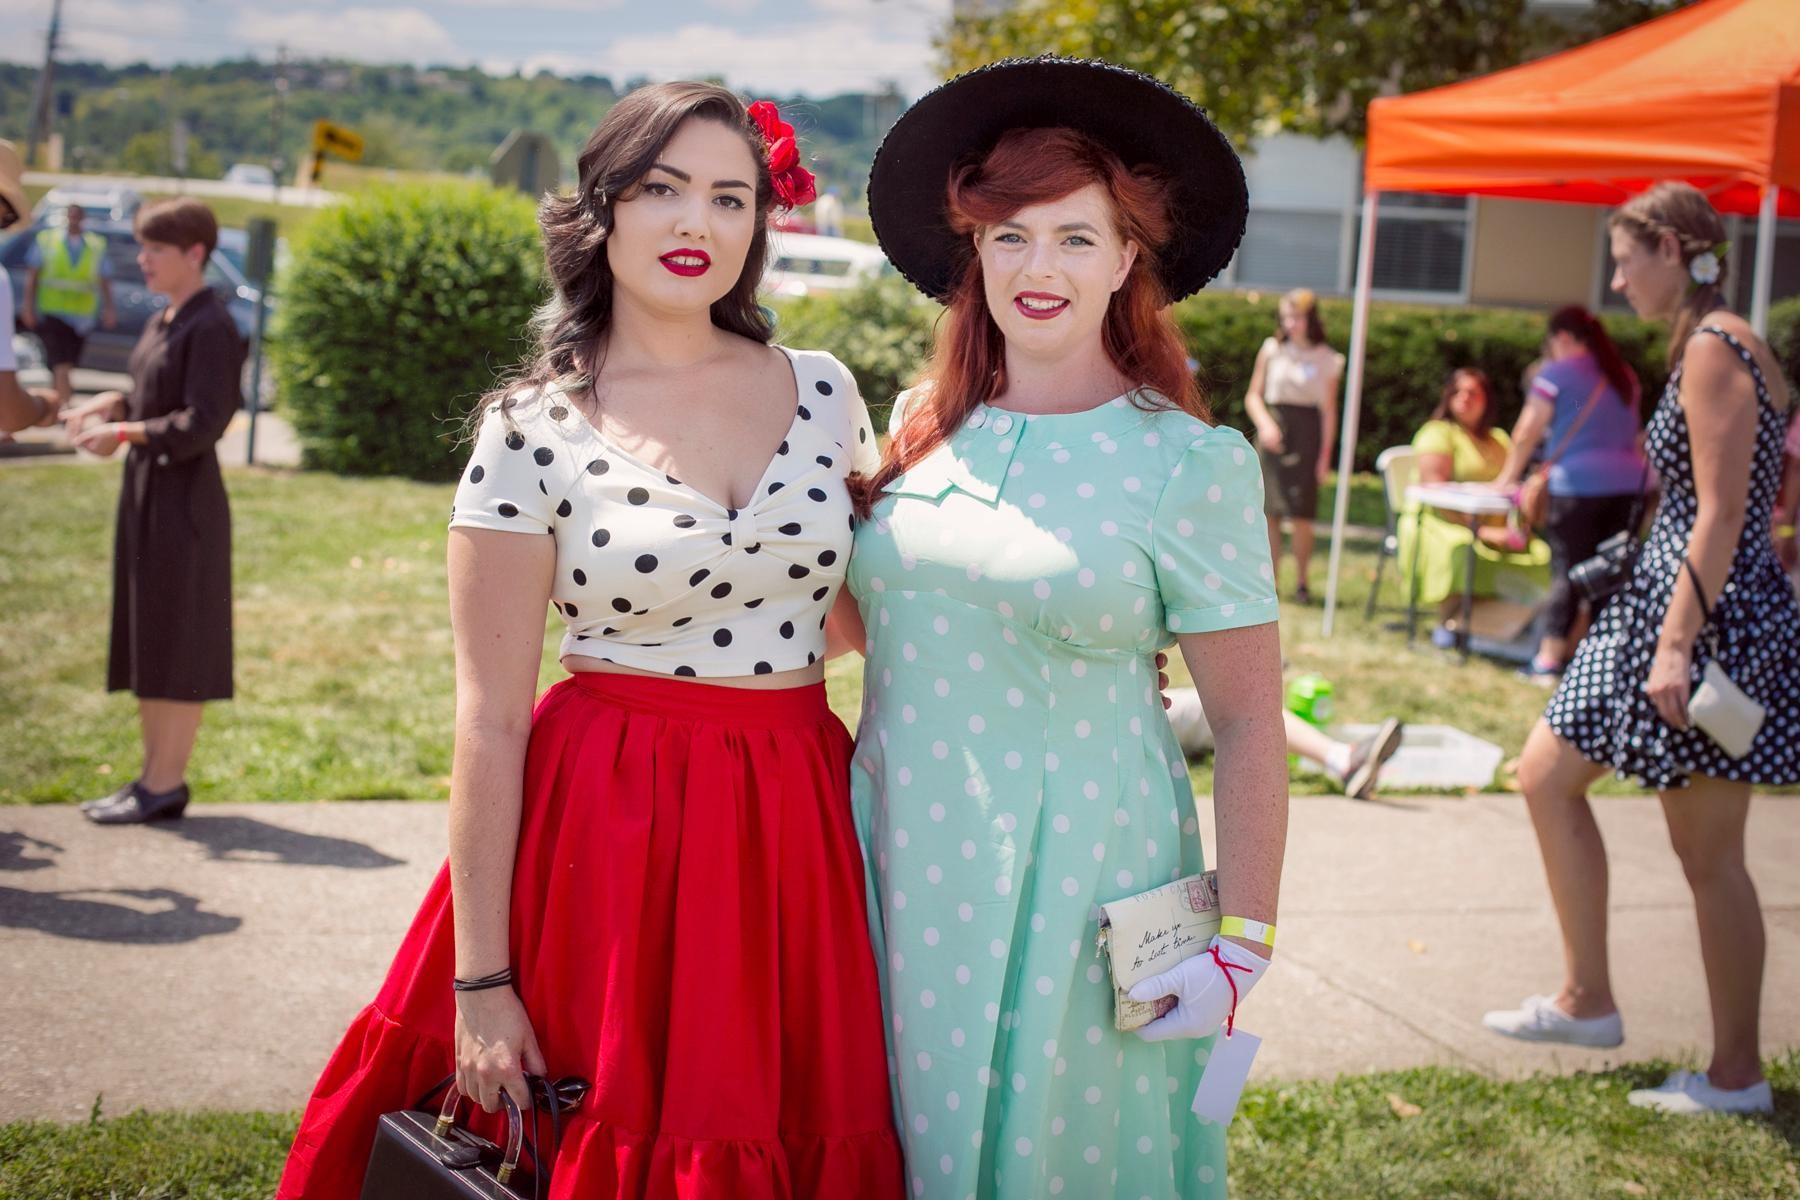 People: Bonnie Oliver and Emily Speeg / Event: 1940s Day Celebration at Lunken (8.12.17) / Image: Mike Bresnen Photography // Published: 9.3.17